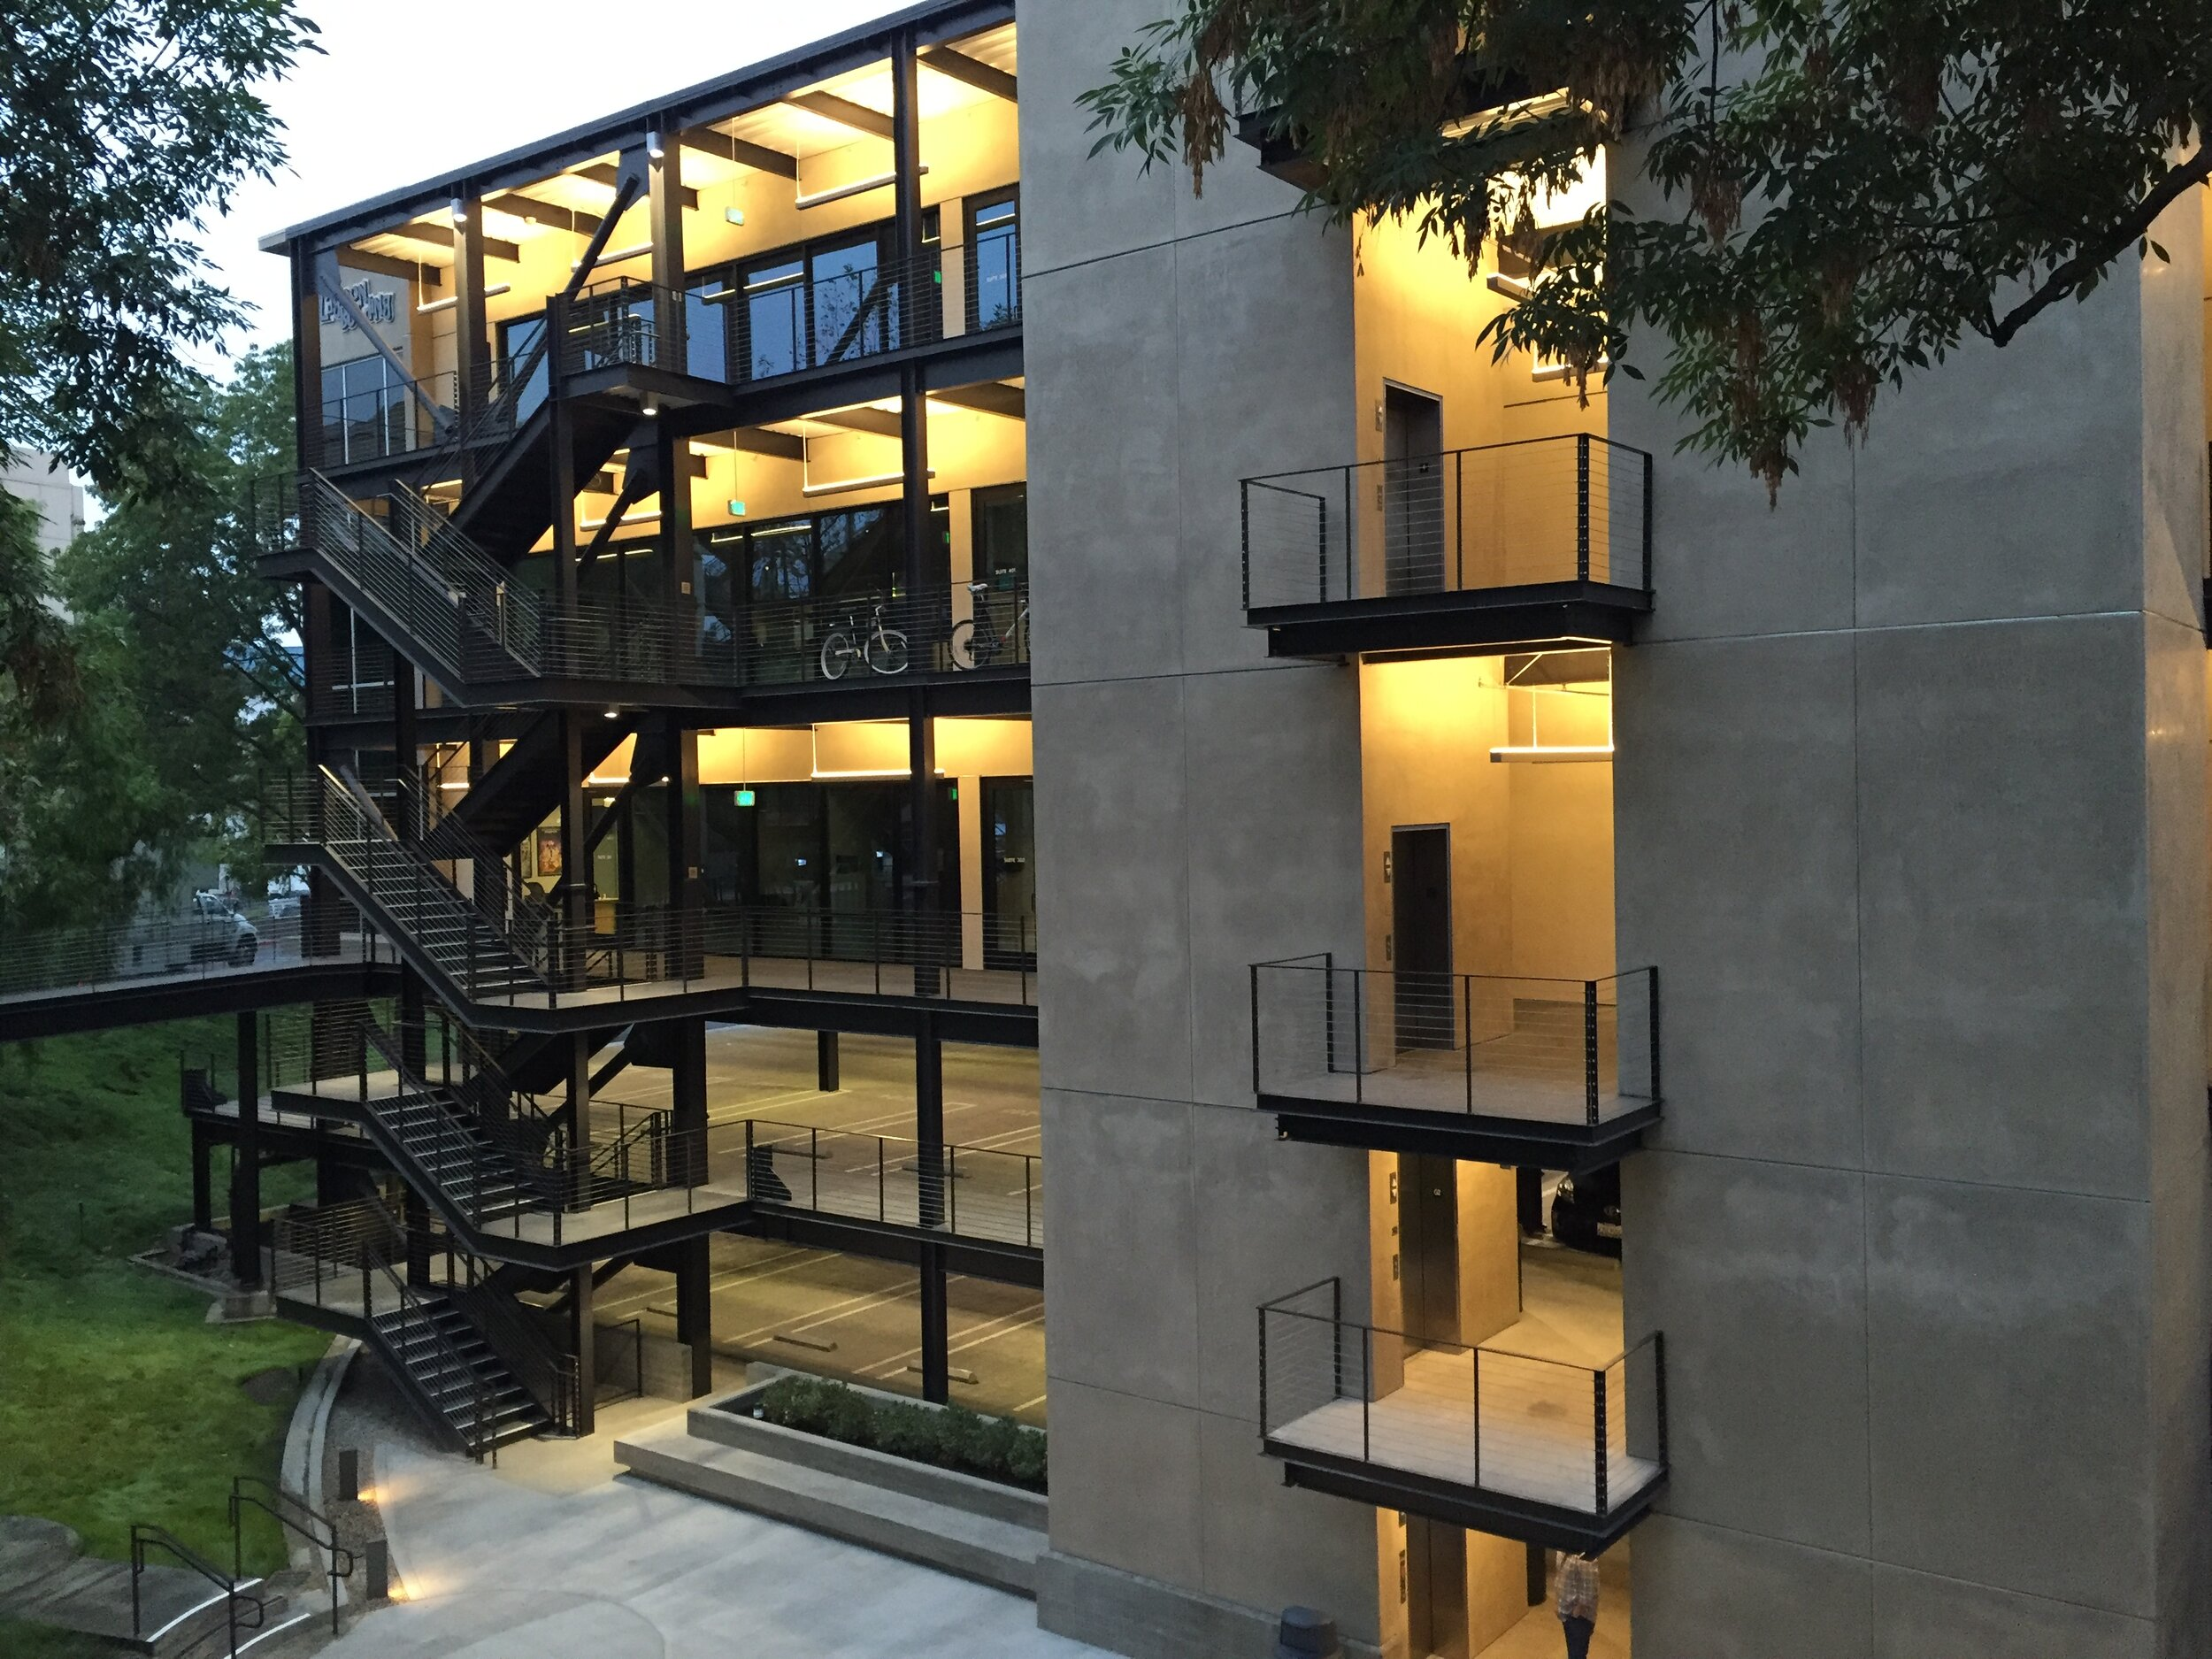 Project Summary  Market Sector: Commercial & Office  Description: 64,000 sqft production office space and parking. Type 11-A construction.  Owner: CBS Studio Center  Architect: Profeta Royalty Architects